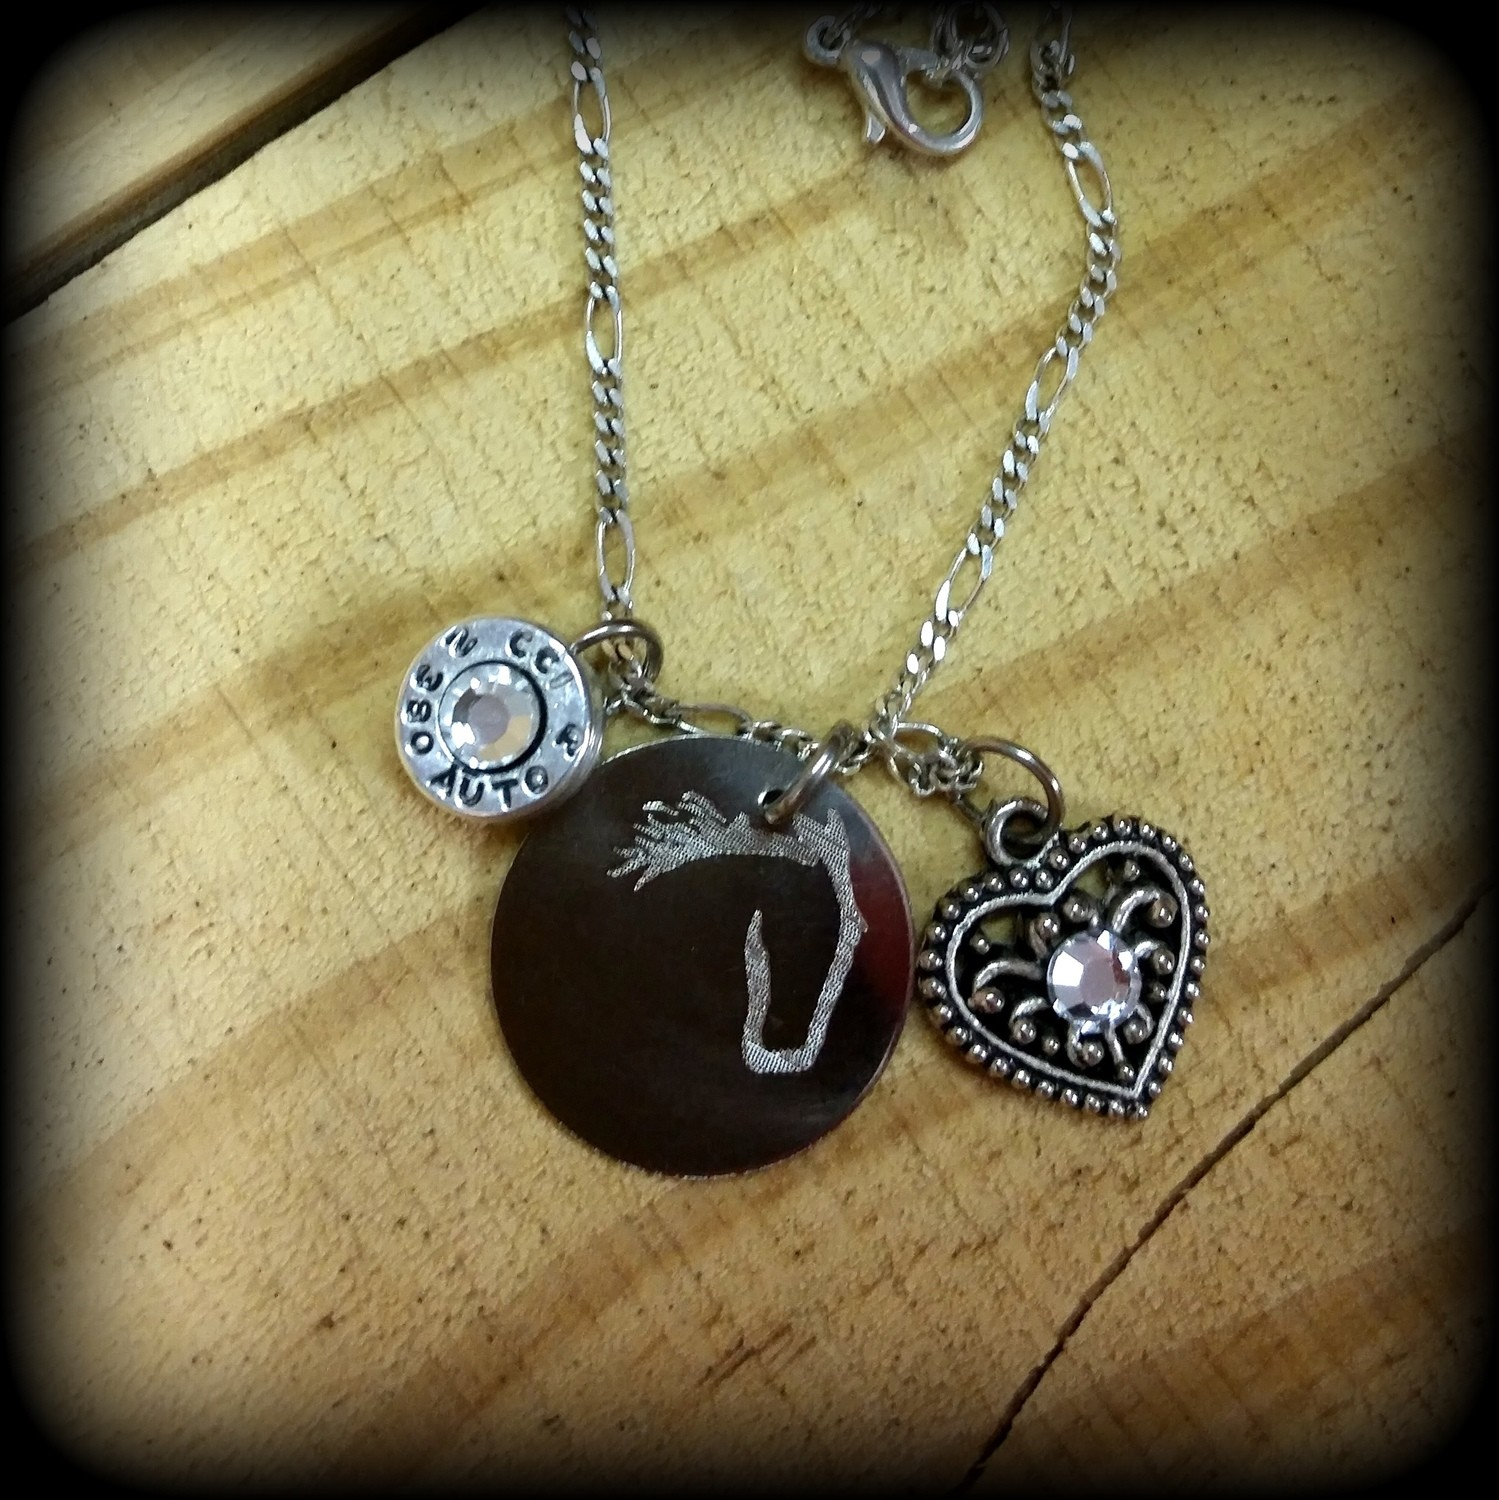 Bullet Casing Base, Horse and Heart Charm Necklace